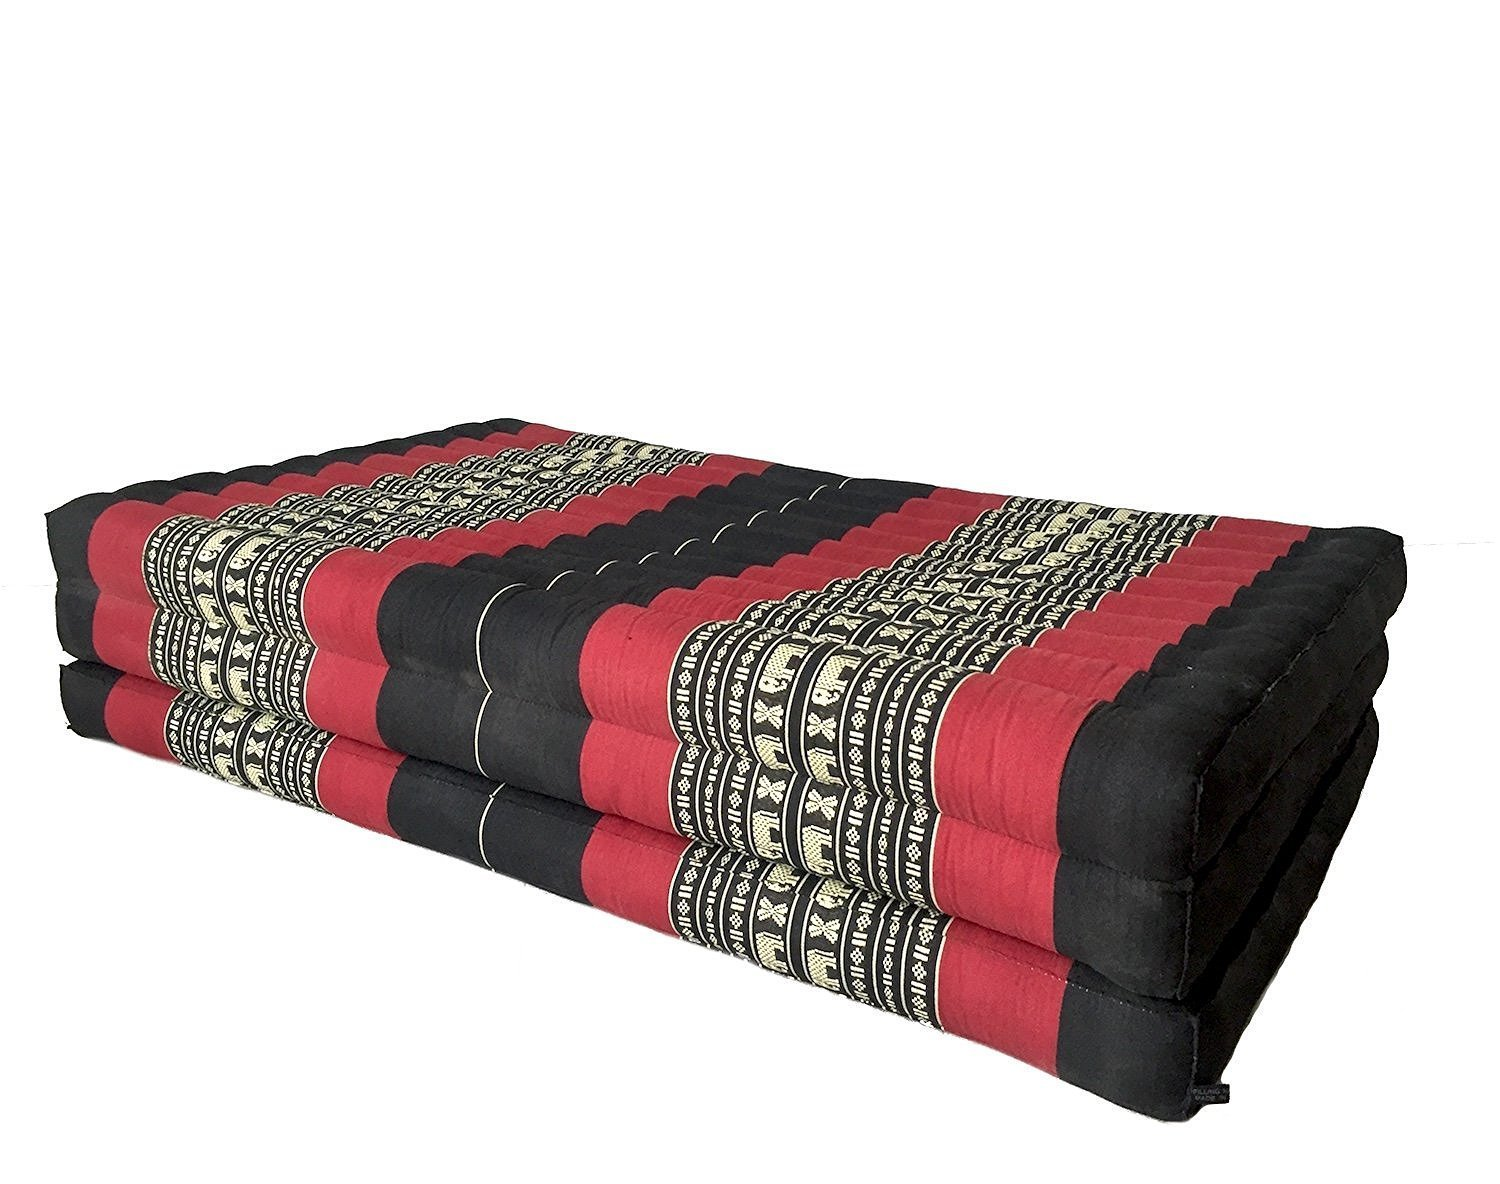 Design by UnseenThailand Thai Massage Mat, Kapok Fabric, Premium Double Stitched, 82x46x3 inches. (Black - Red)